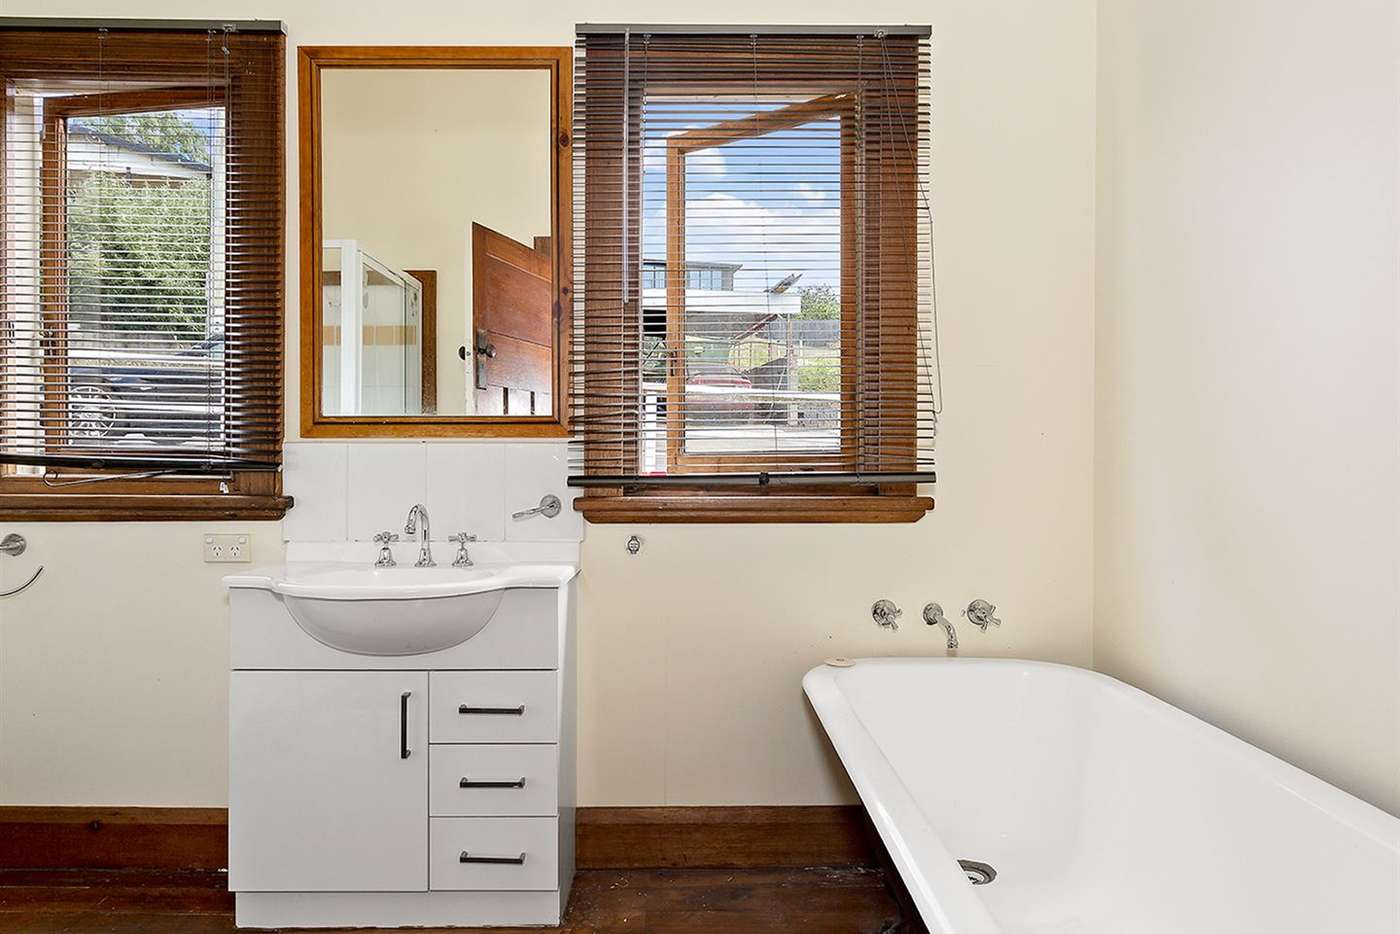 Sixth view of Homely house listing, 7 Jackson Street, Mowbray TAS 7248